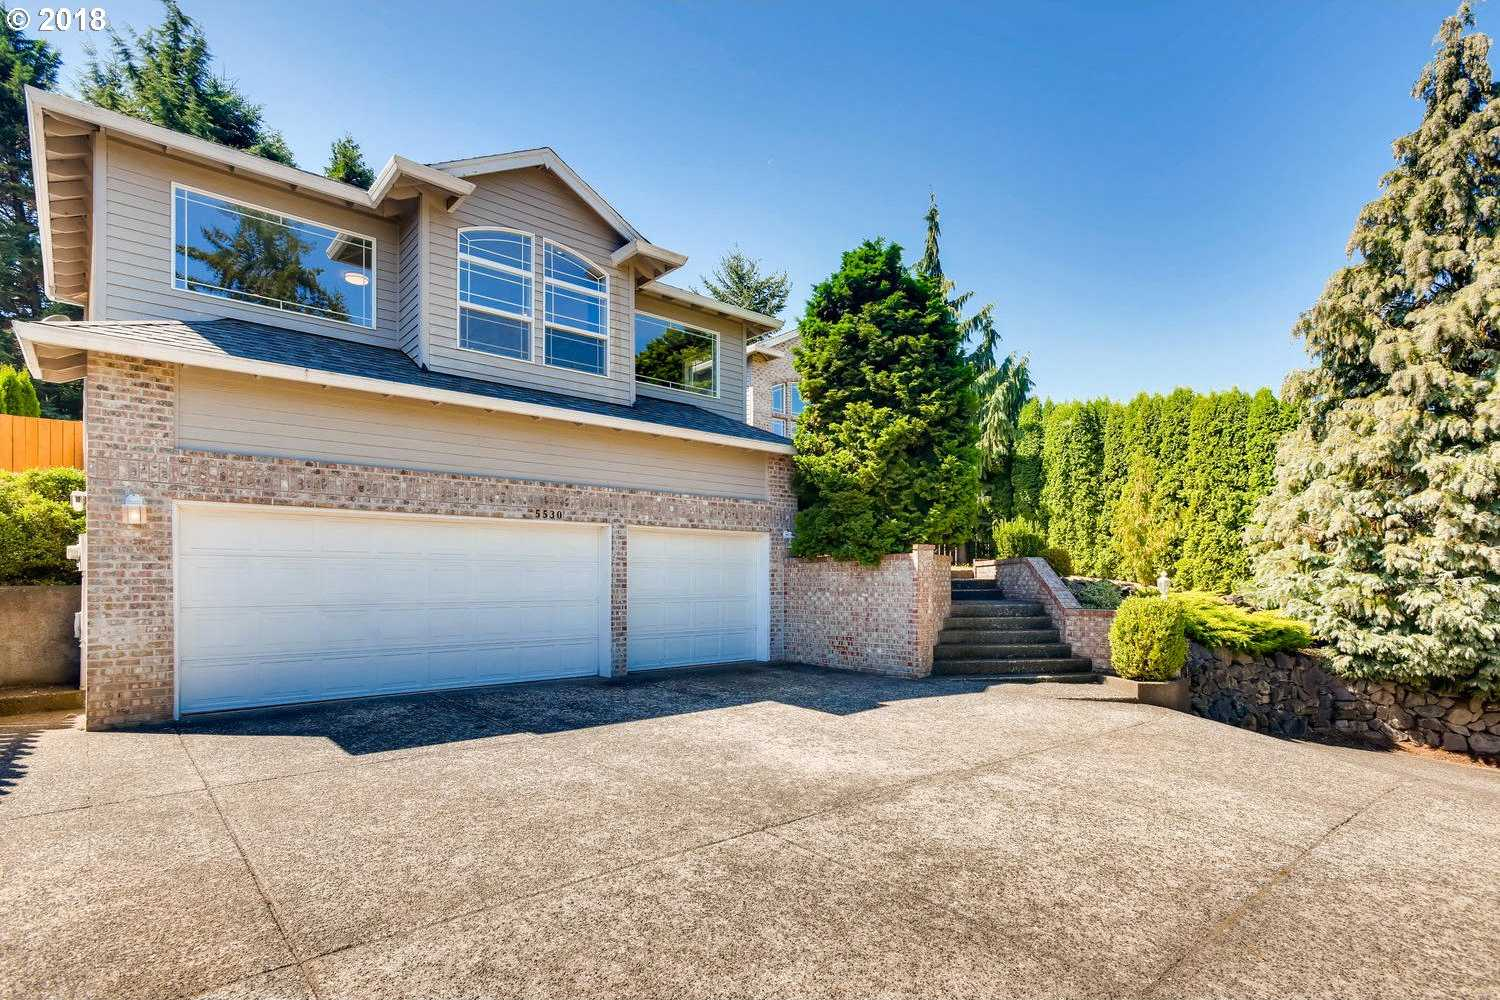 $619,000 - 3Br/3Ba -  for Sale in West Linn